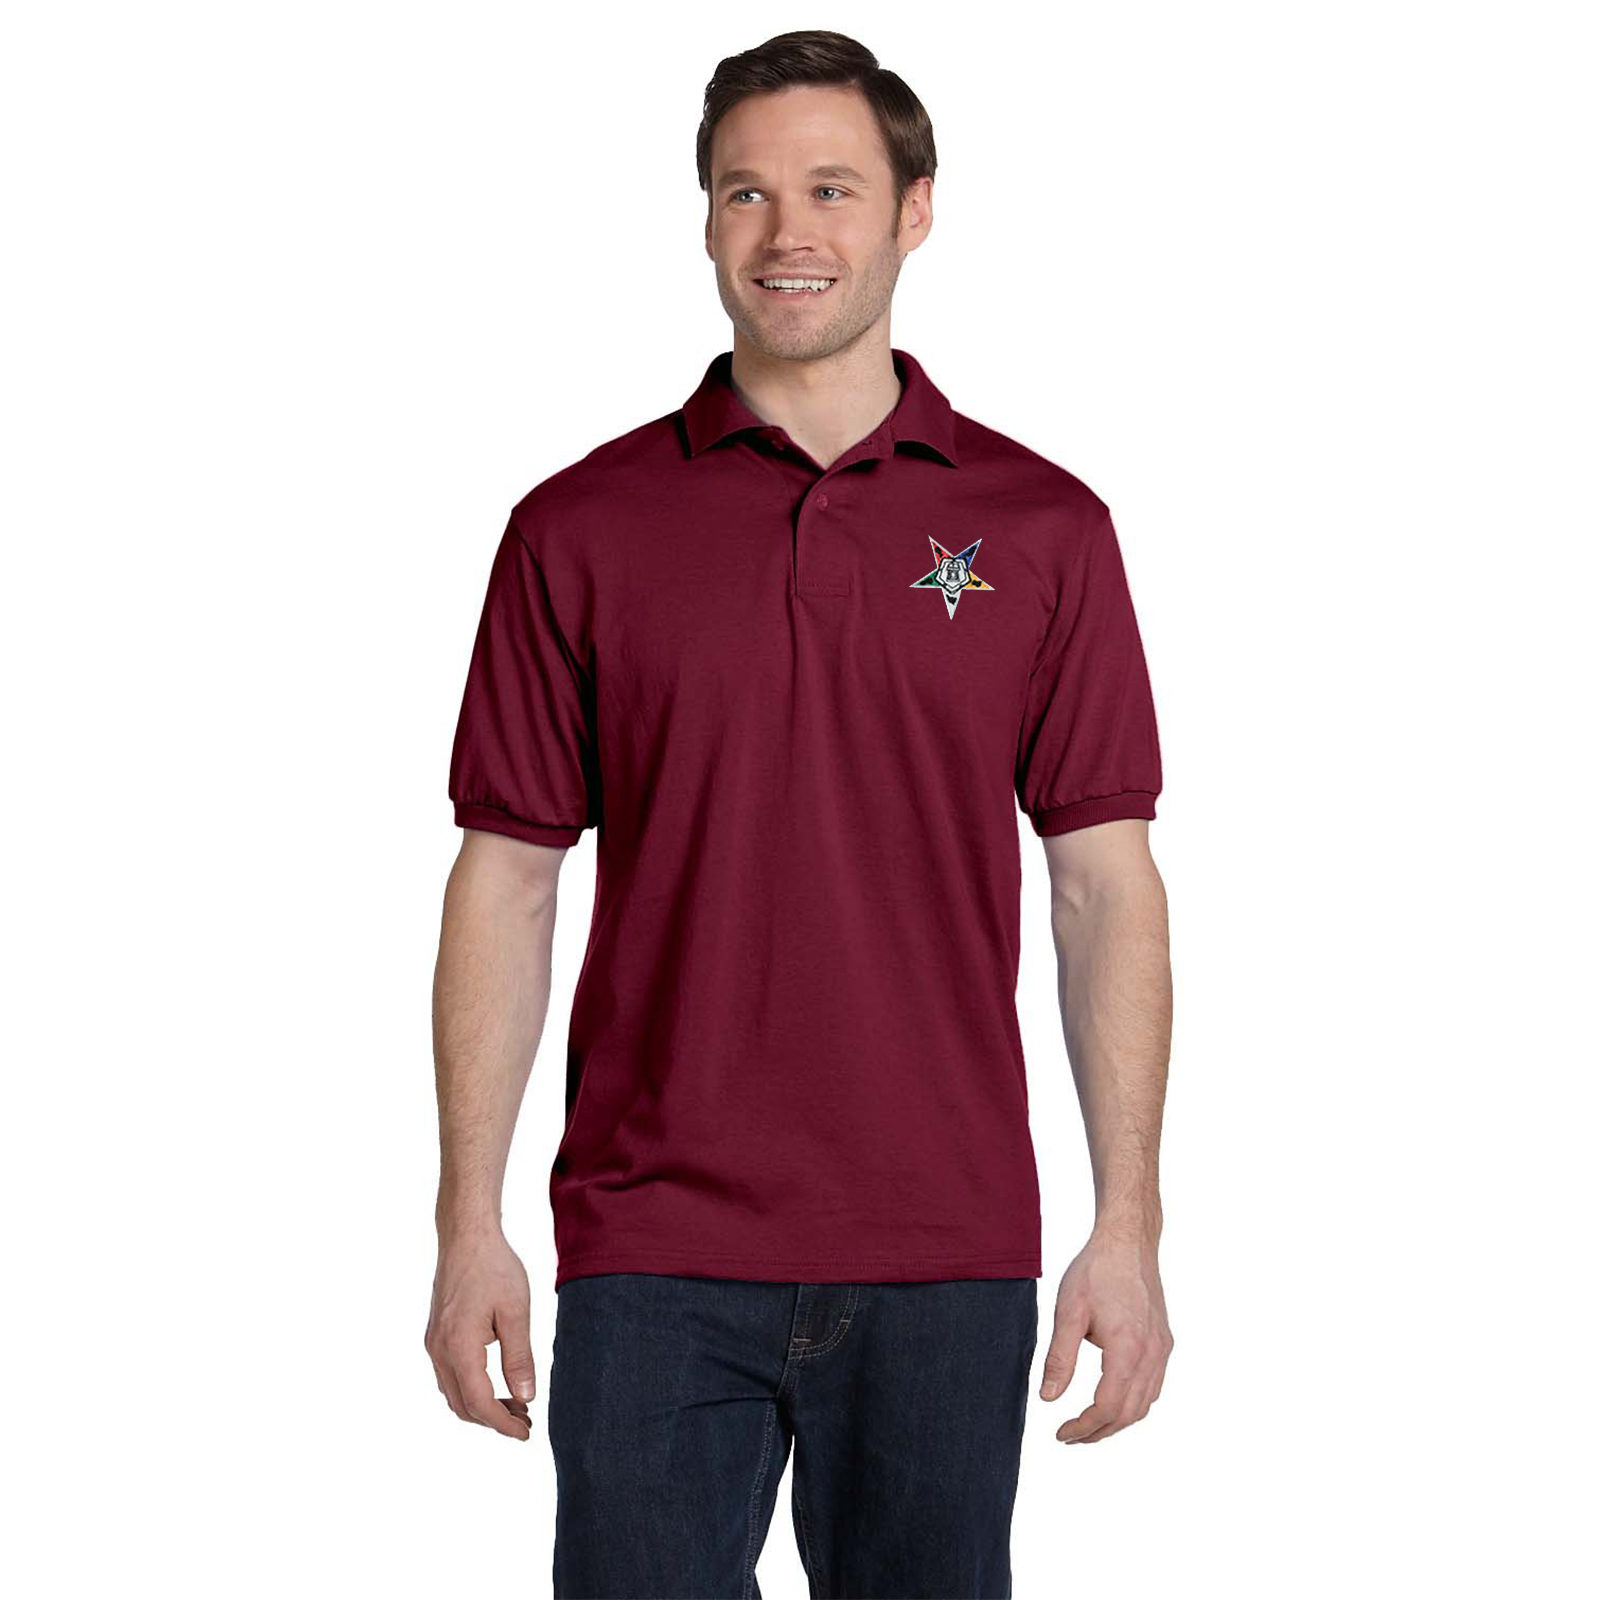 Order of the Eastern Star Embroidered Masonic Men's Polo Shirt